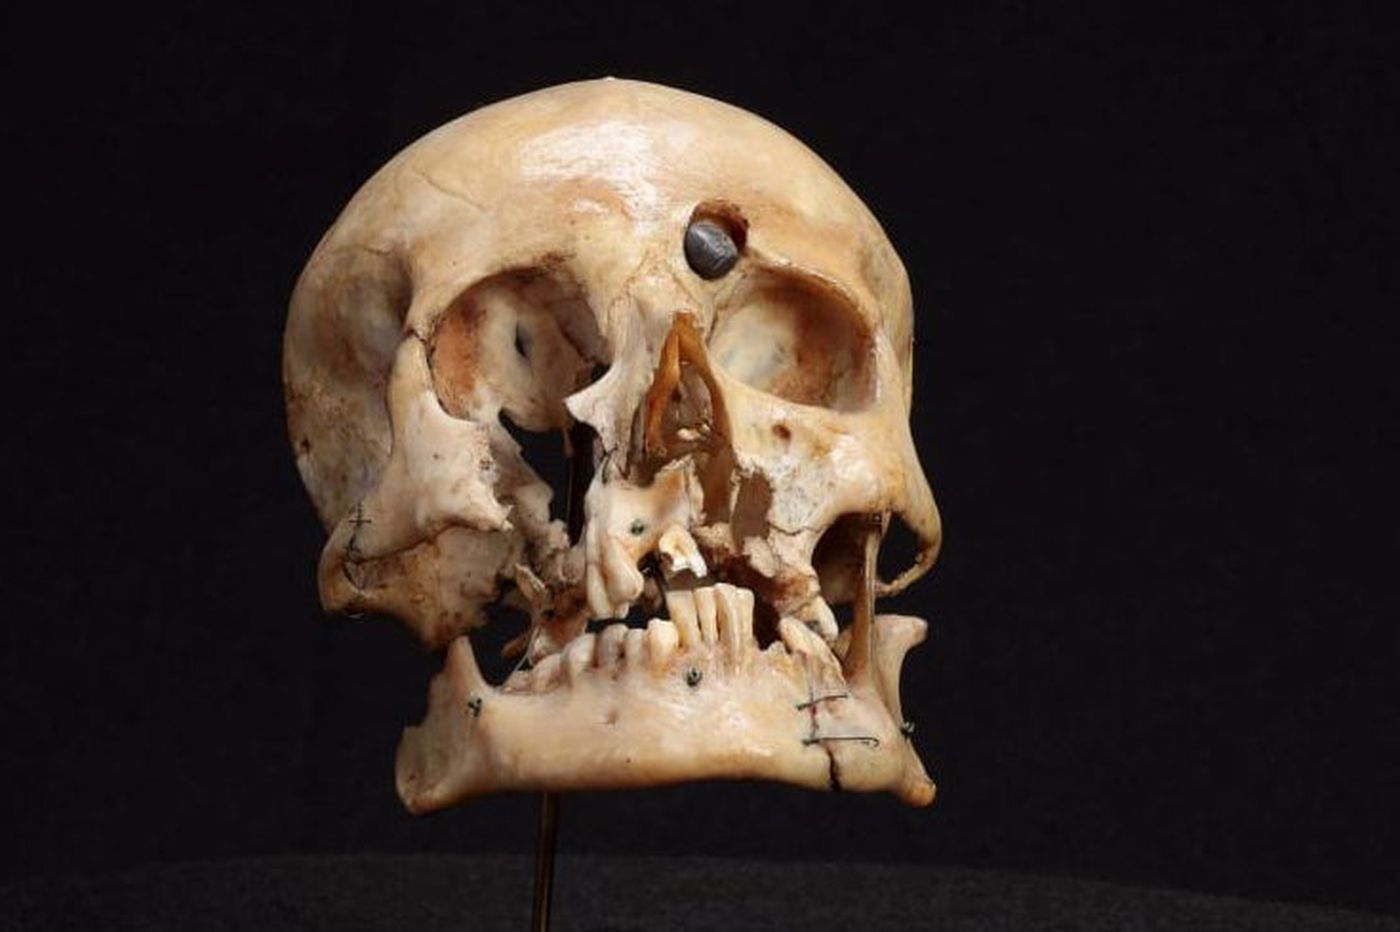 Controversy erupts over WWI Australian soldier's skull at Mutter Museum